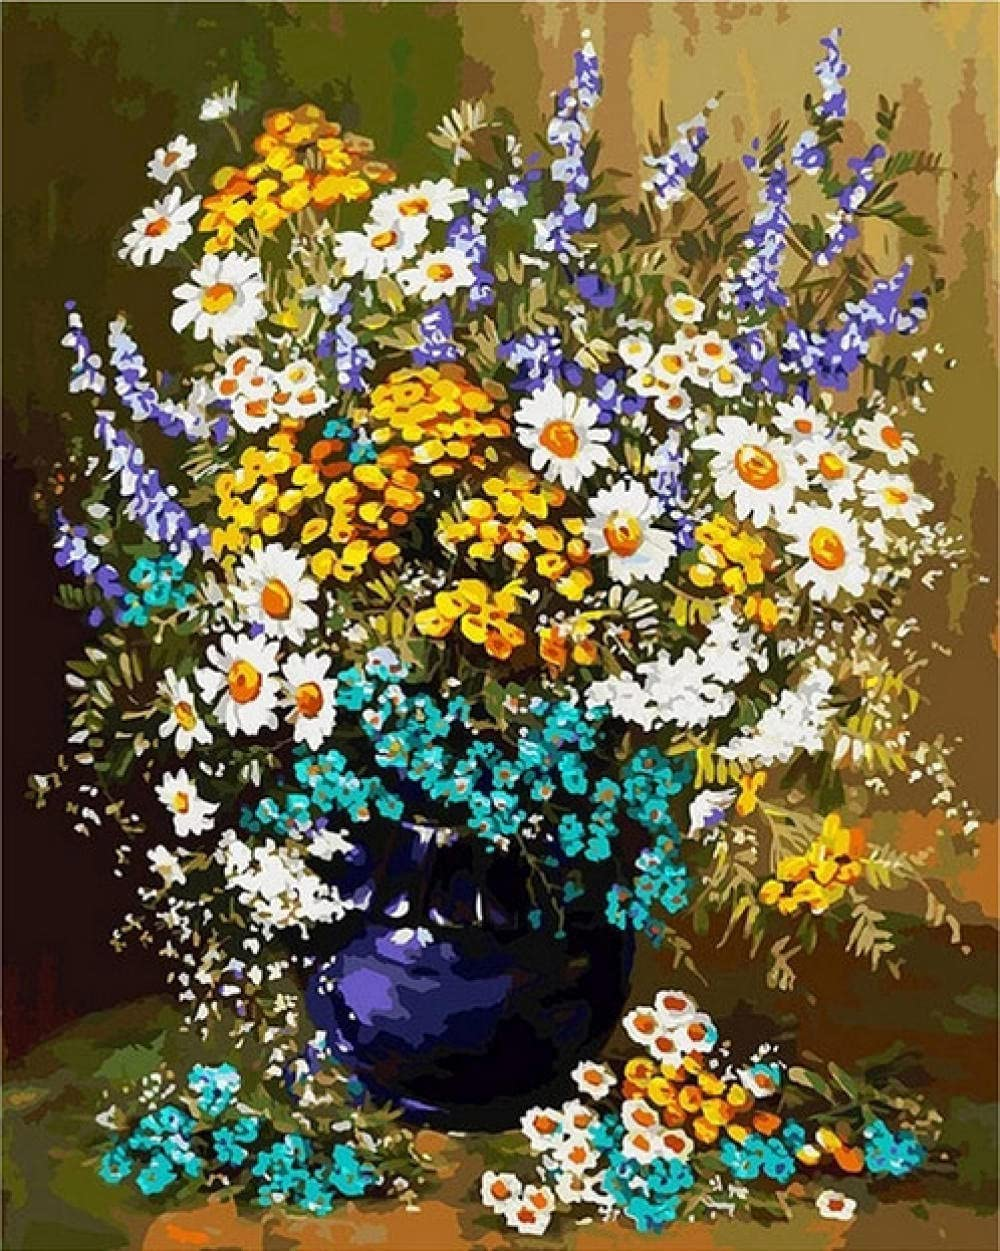 HRKDHBS Paint by Numbers Max 76% OFF Beautiful DIY Acrylic Oil Superior Painti Flower